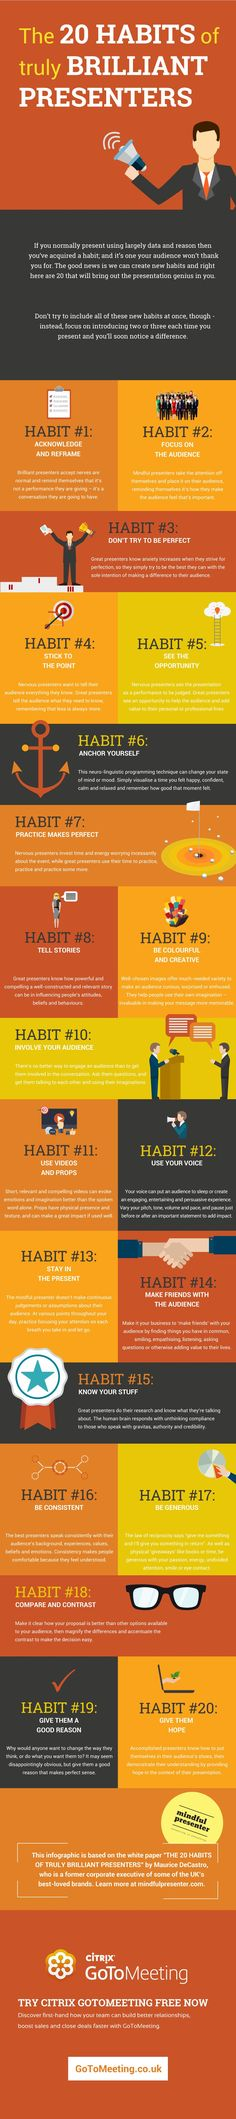 20 habits of truly brilliant presenters